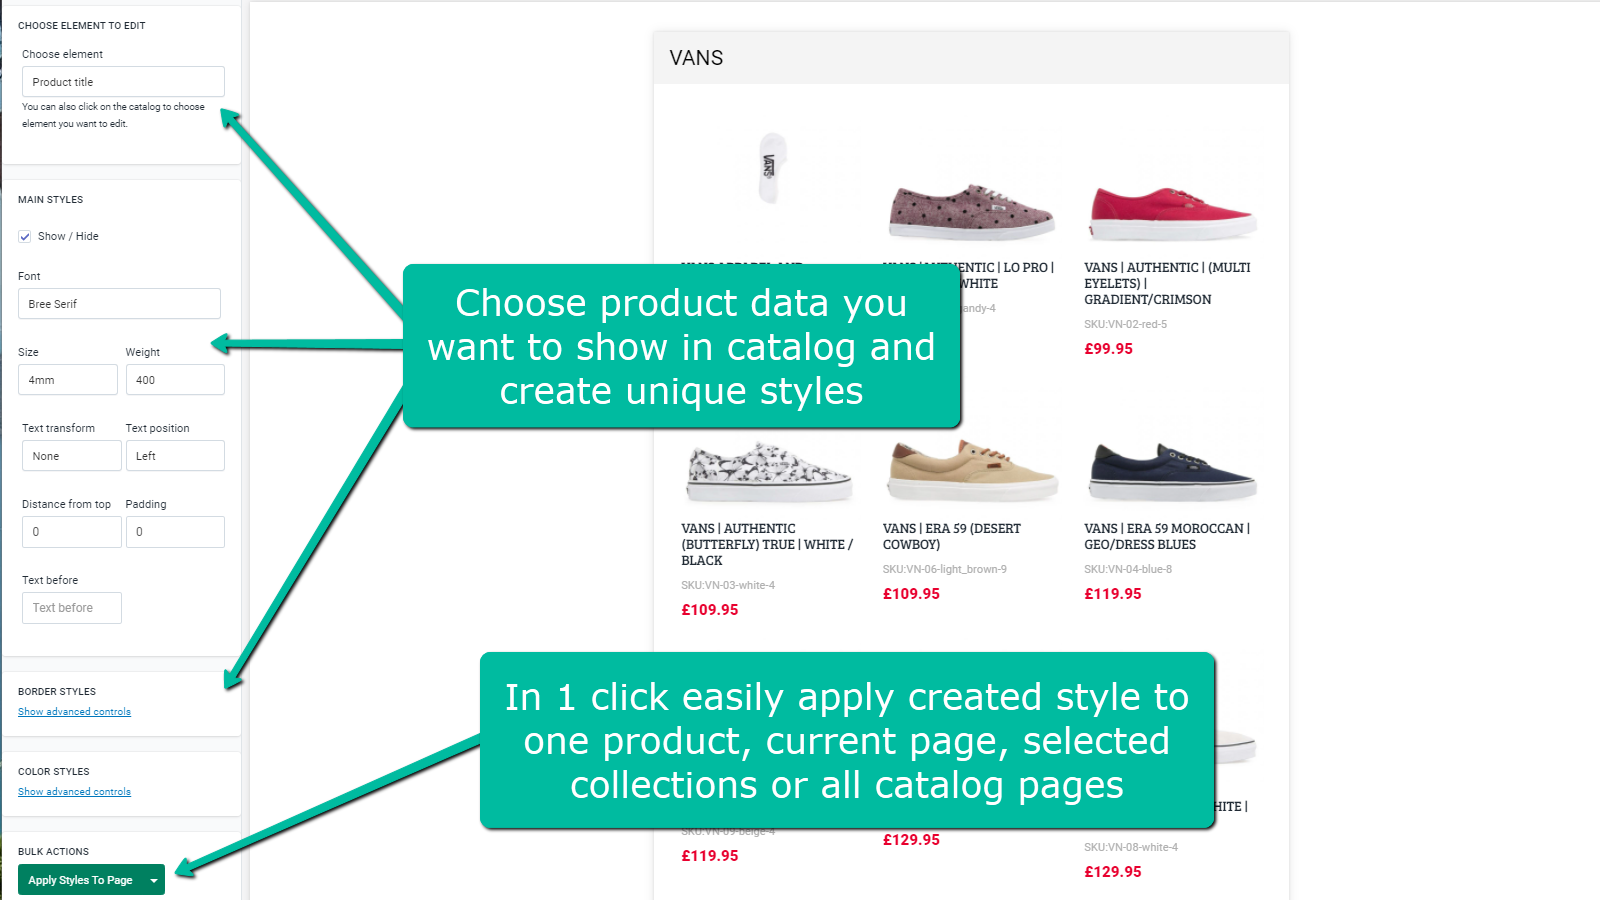 Product data, styles and bulk actions